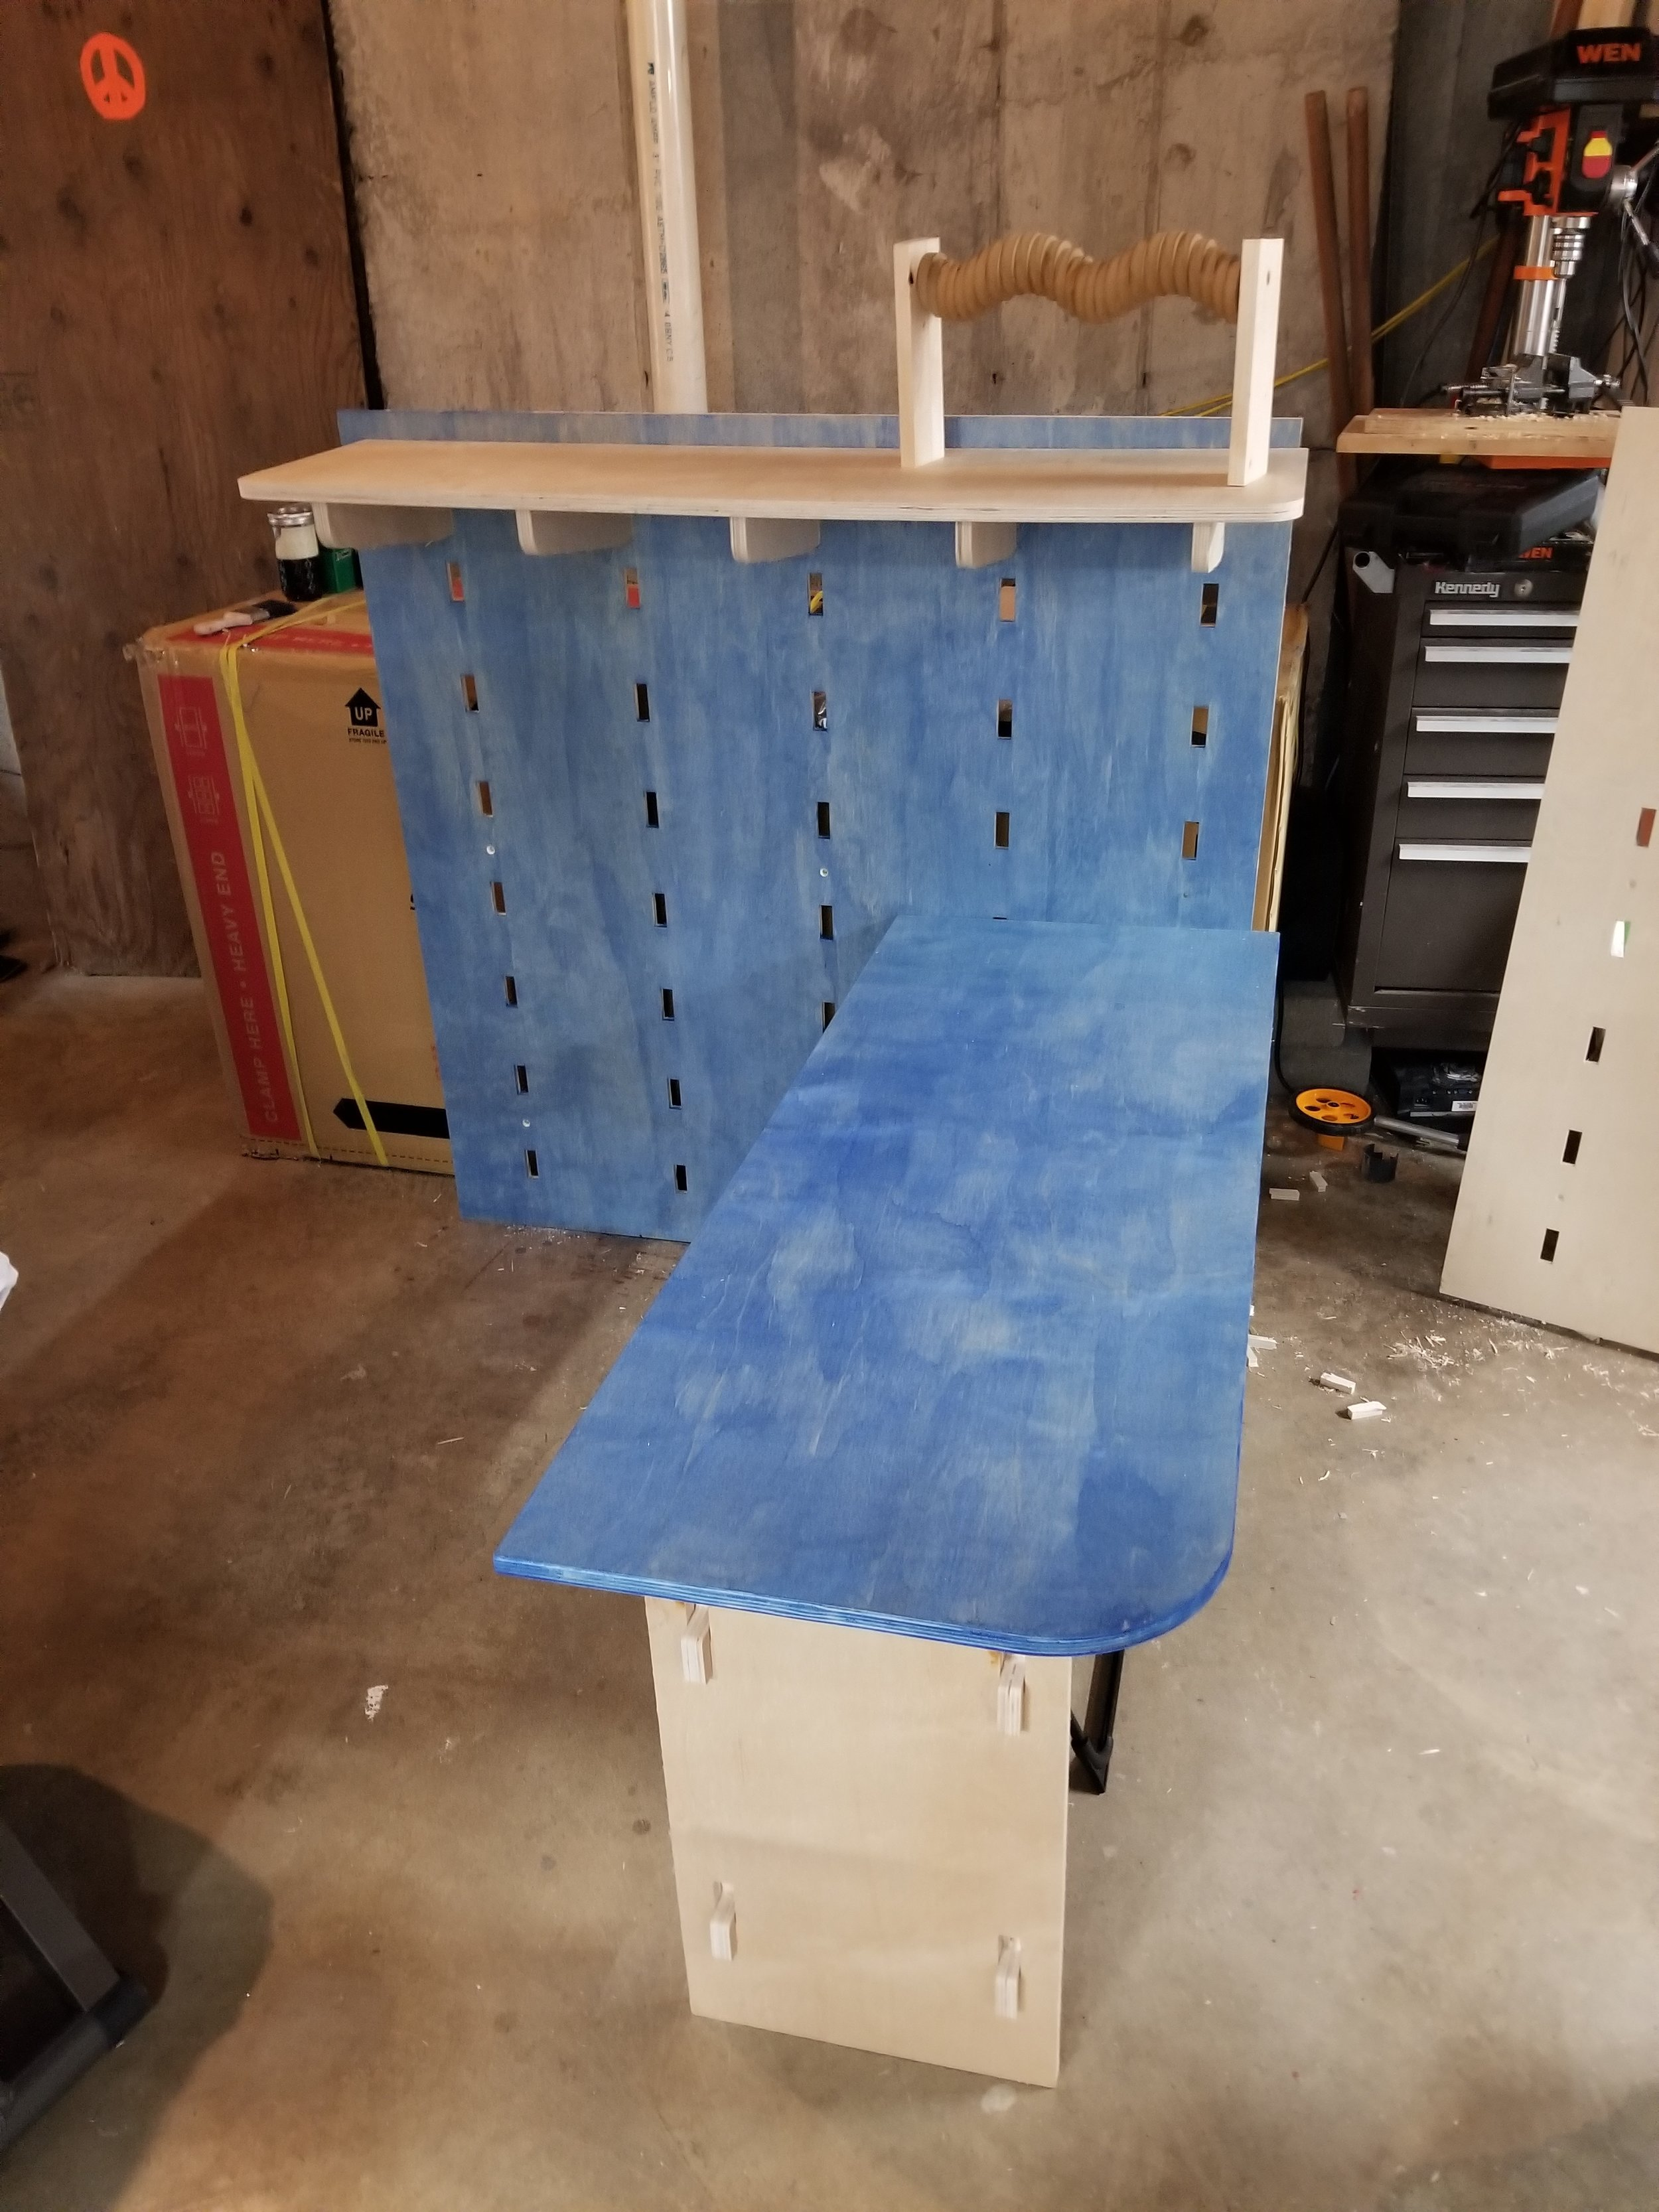 My first table. The table and the wall together costs around $50. I was able to cut 2 shelves and the supports and 5 hooks with several parts still being able to be cut from the same board. It is one .5 inch board and one .75 inch baord.